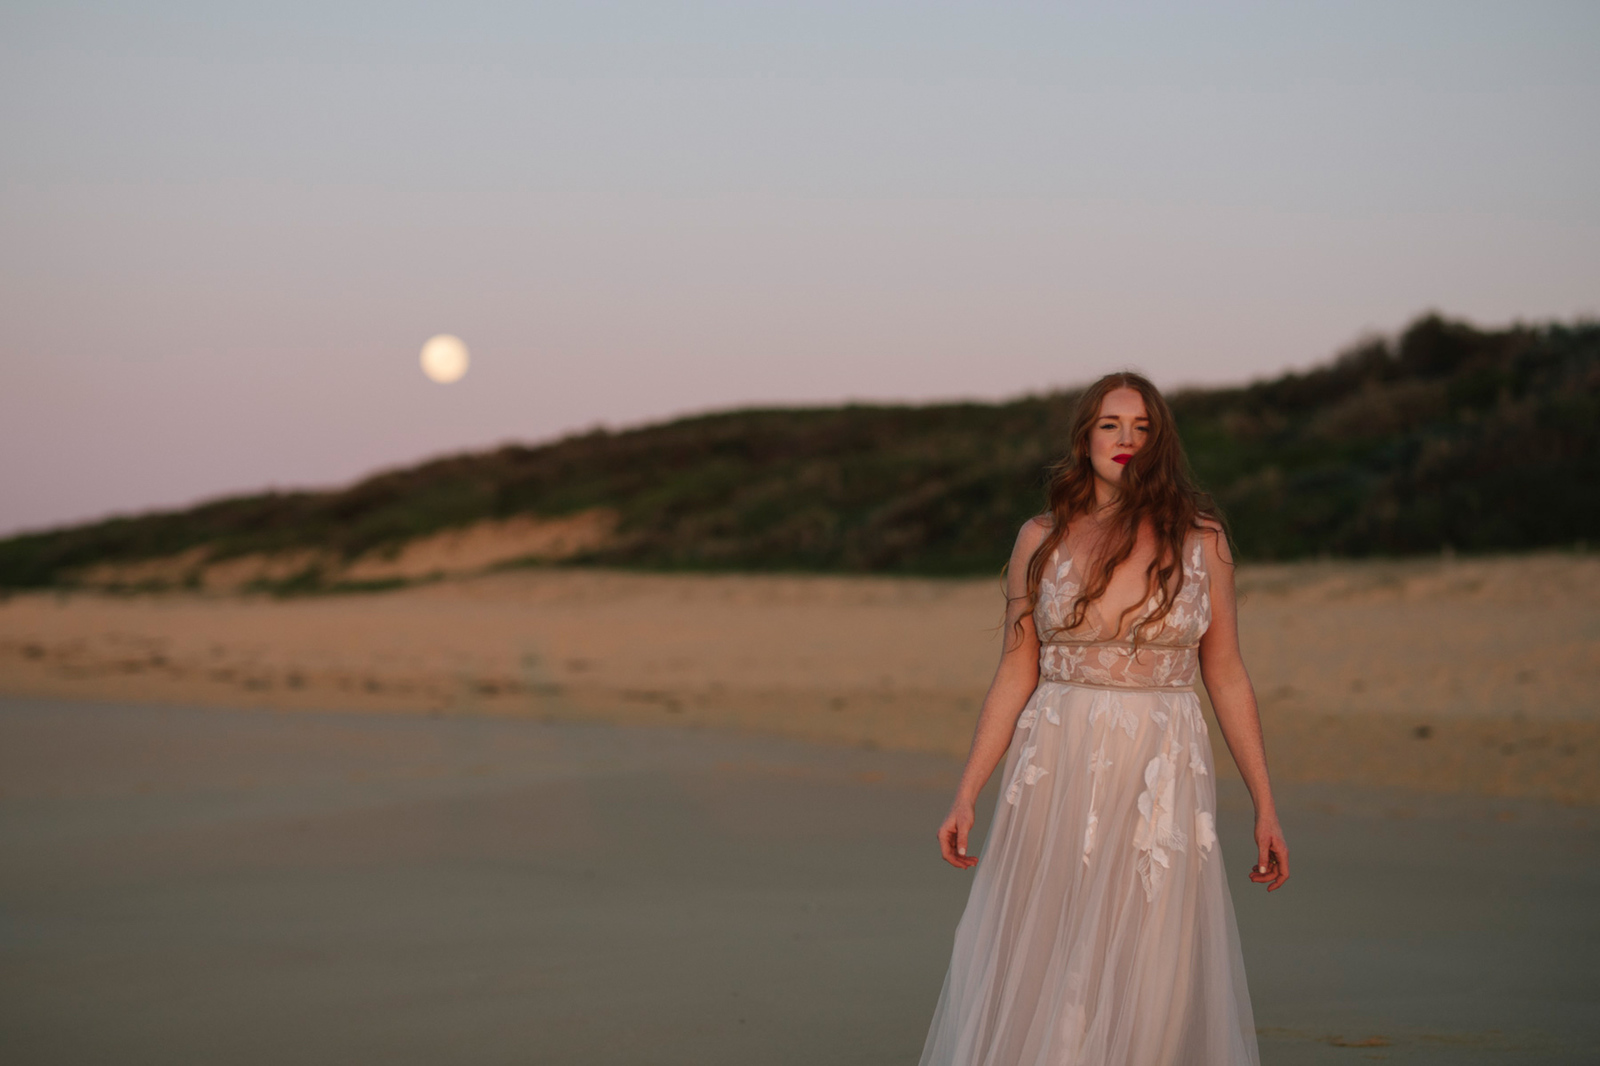 bridal portrait at sunrise with moon in the background